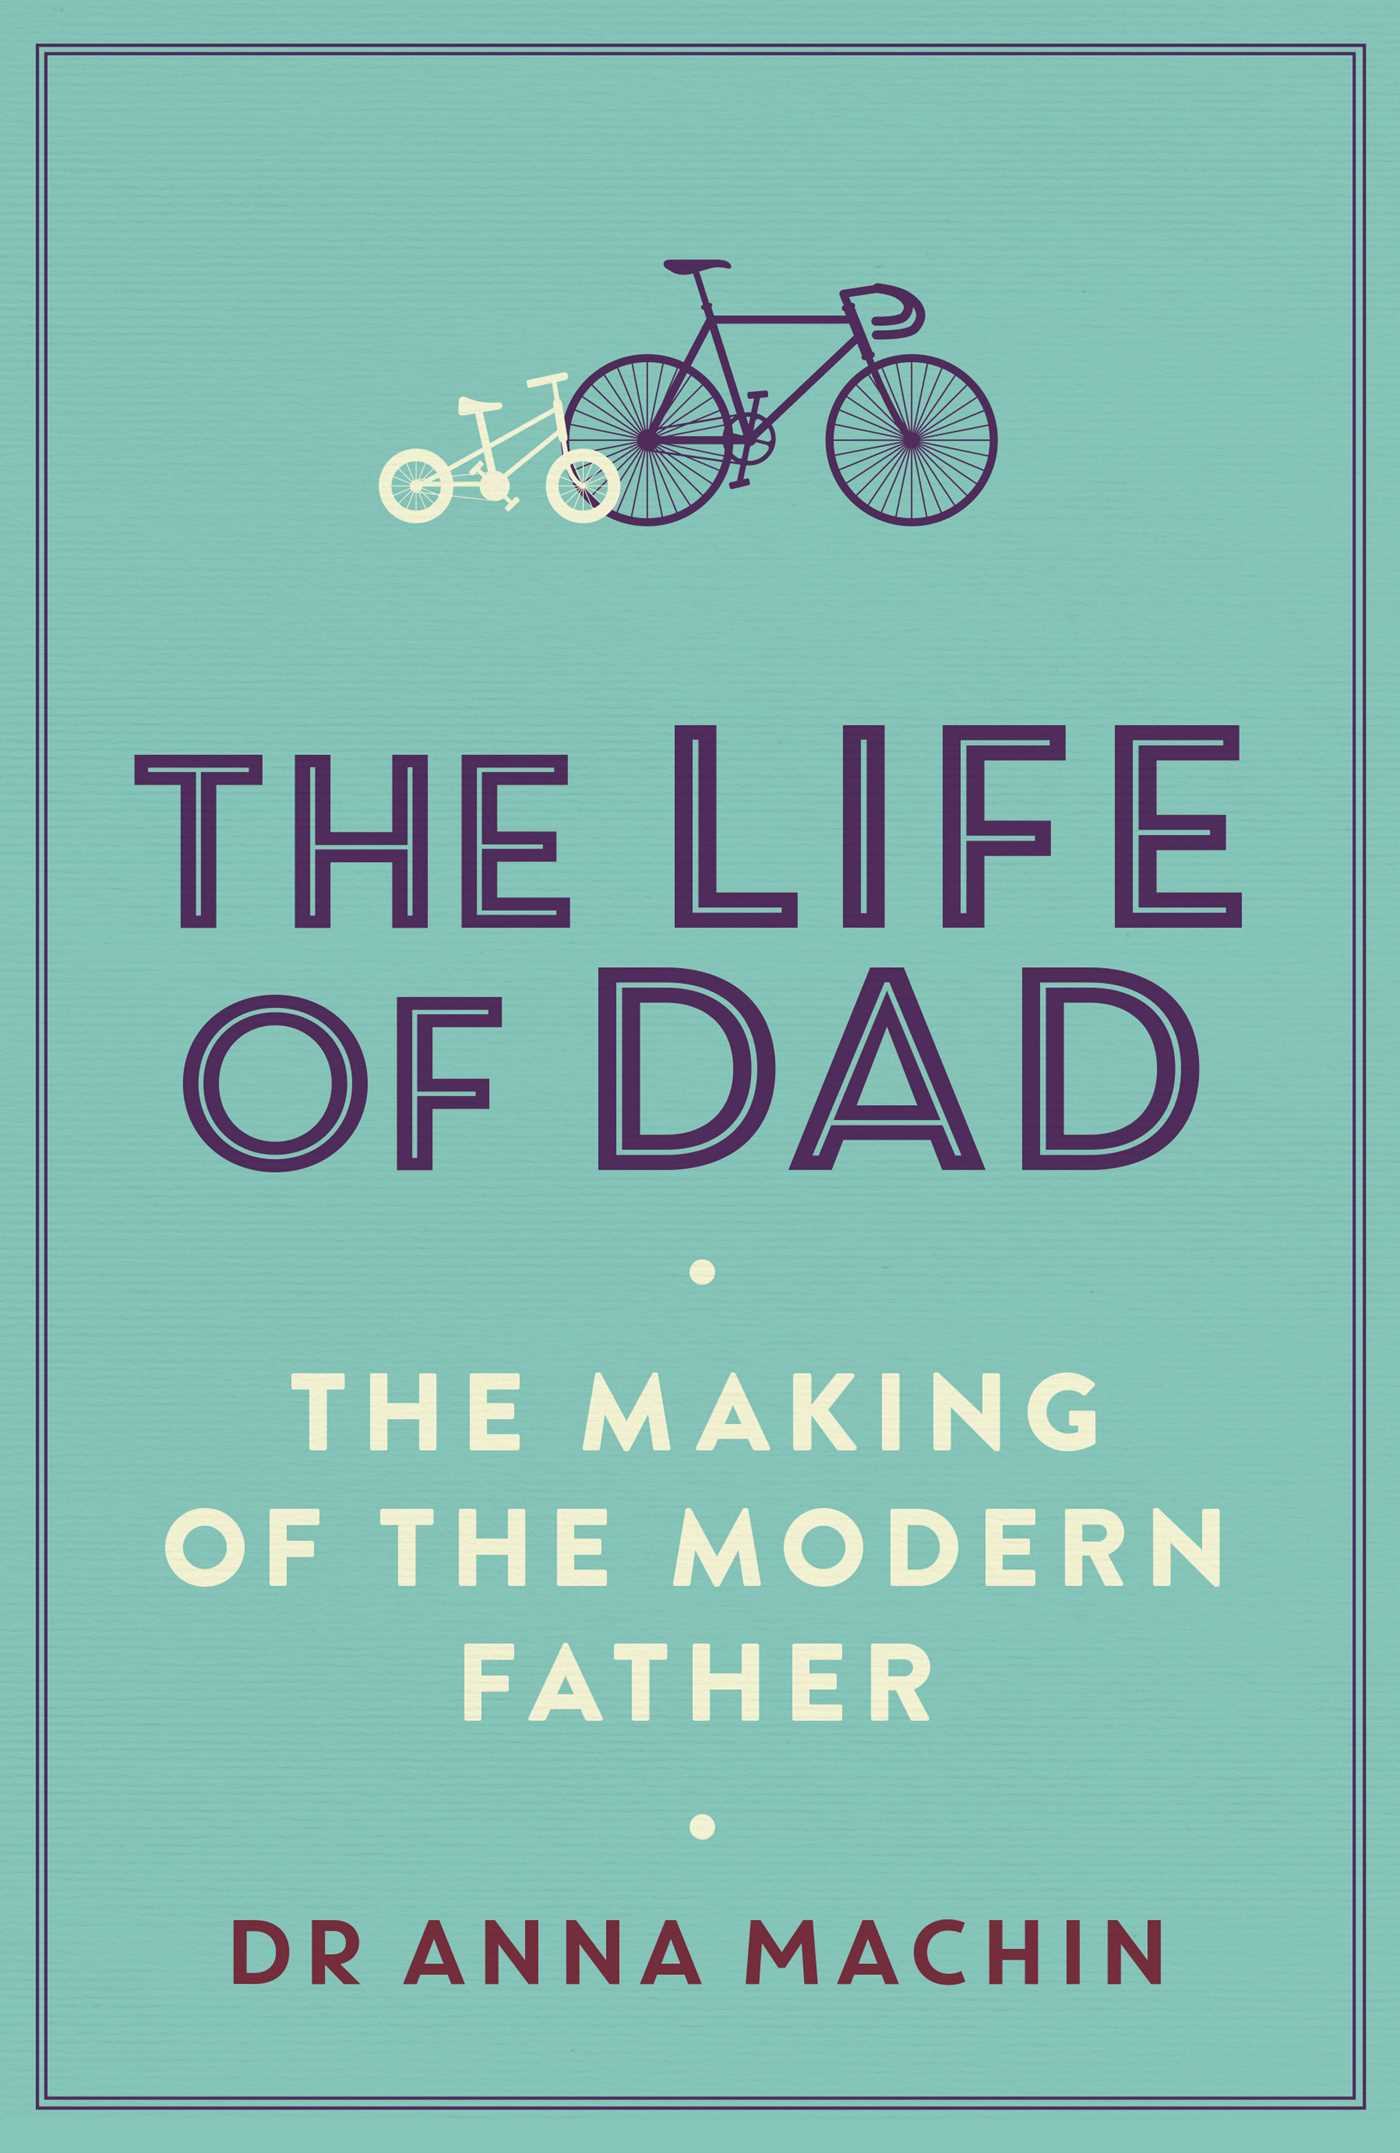 The life of dad 9781471161407 hr